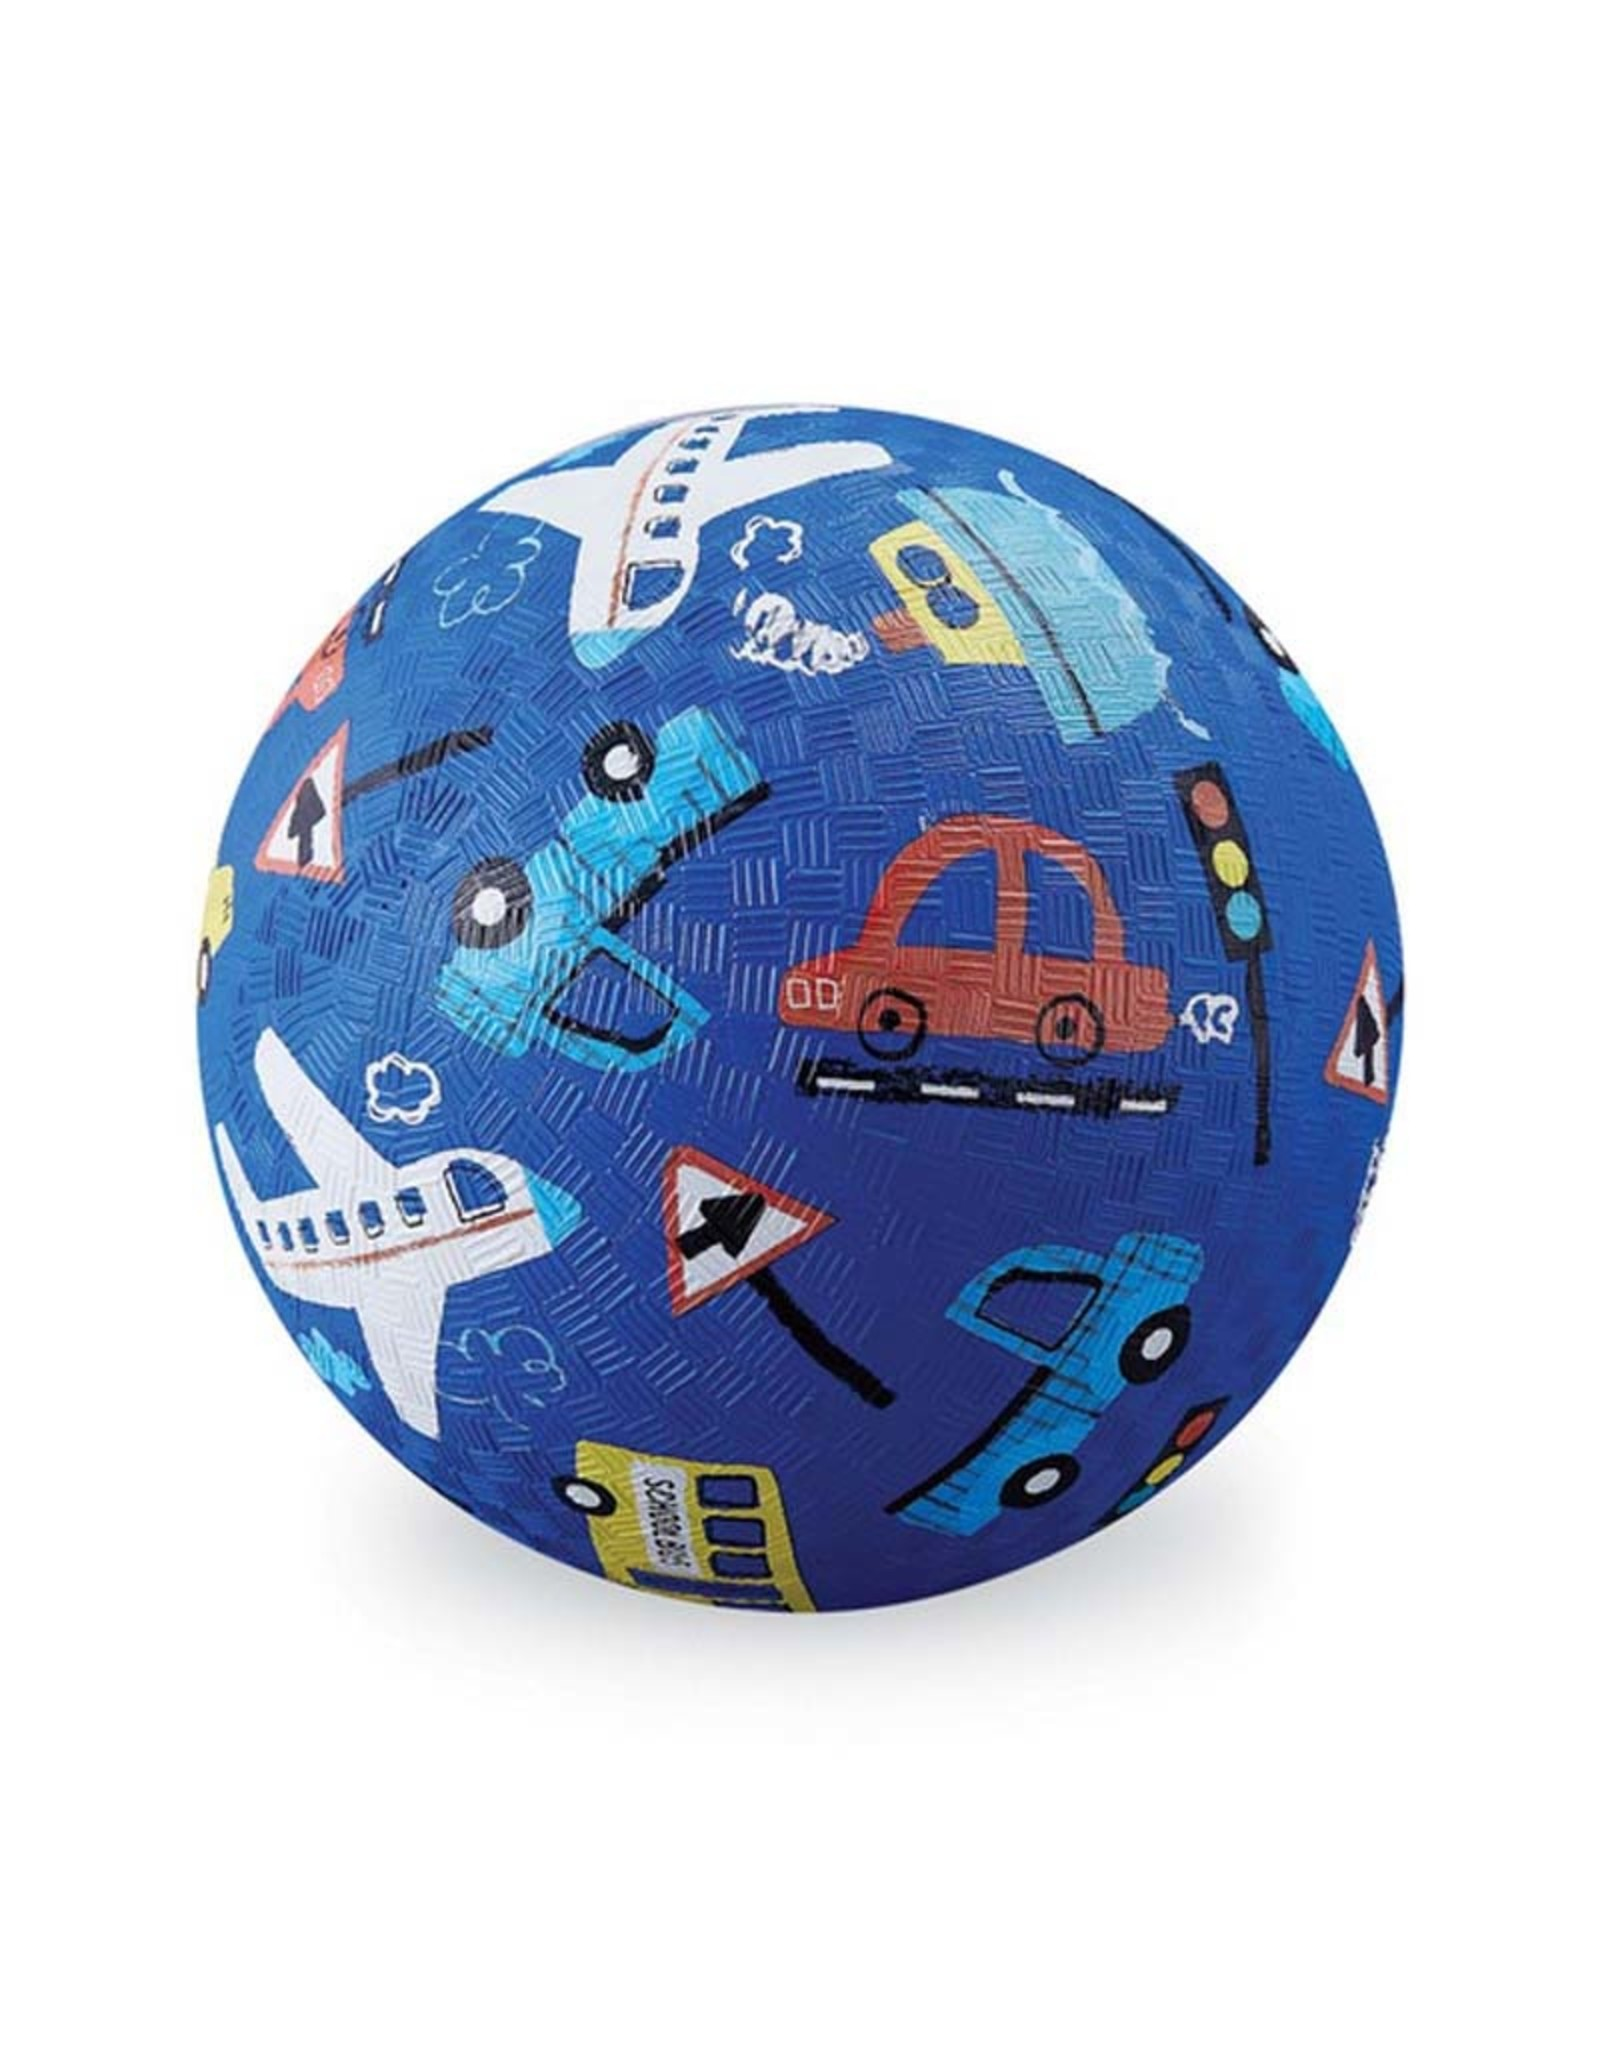 "Crocodile Creek 7"" Playground Ball/Things That Go NEW!"